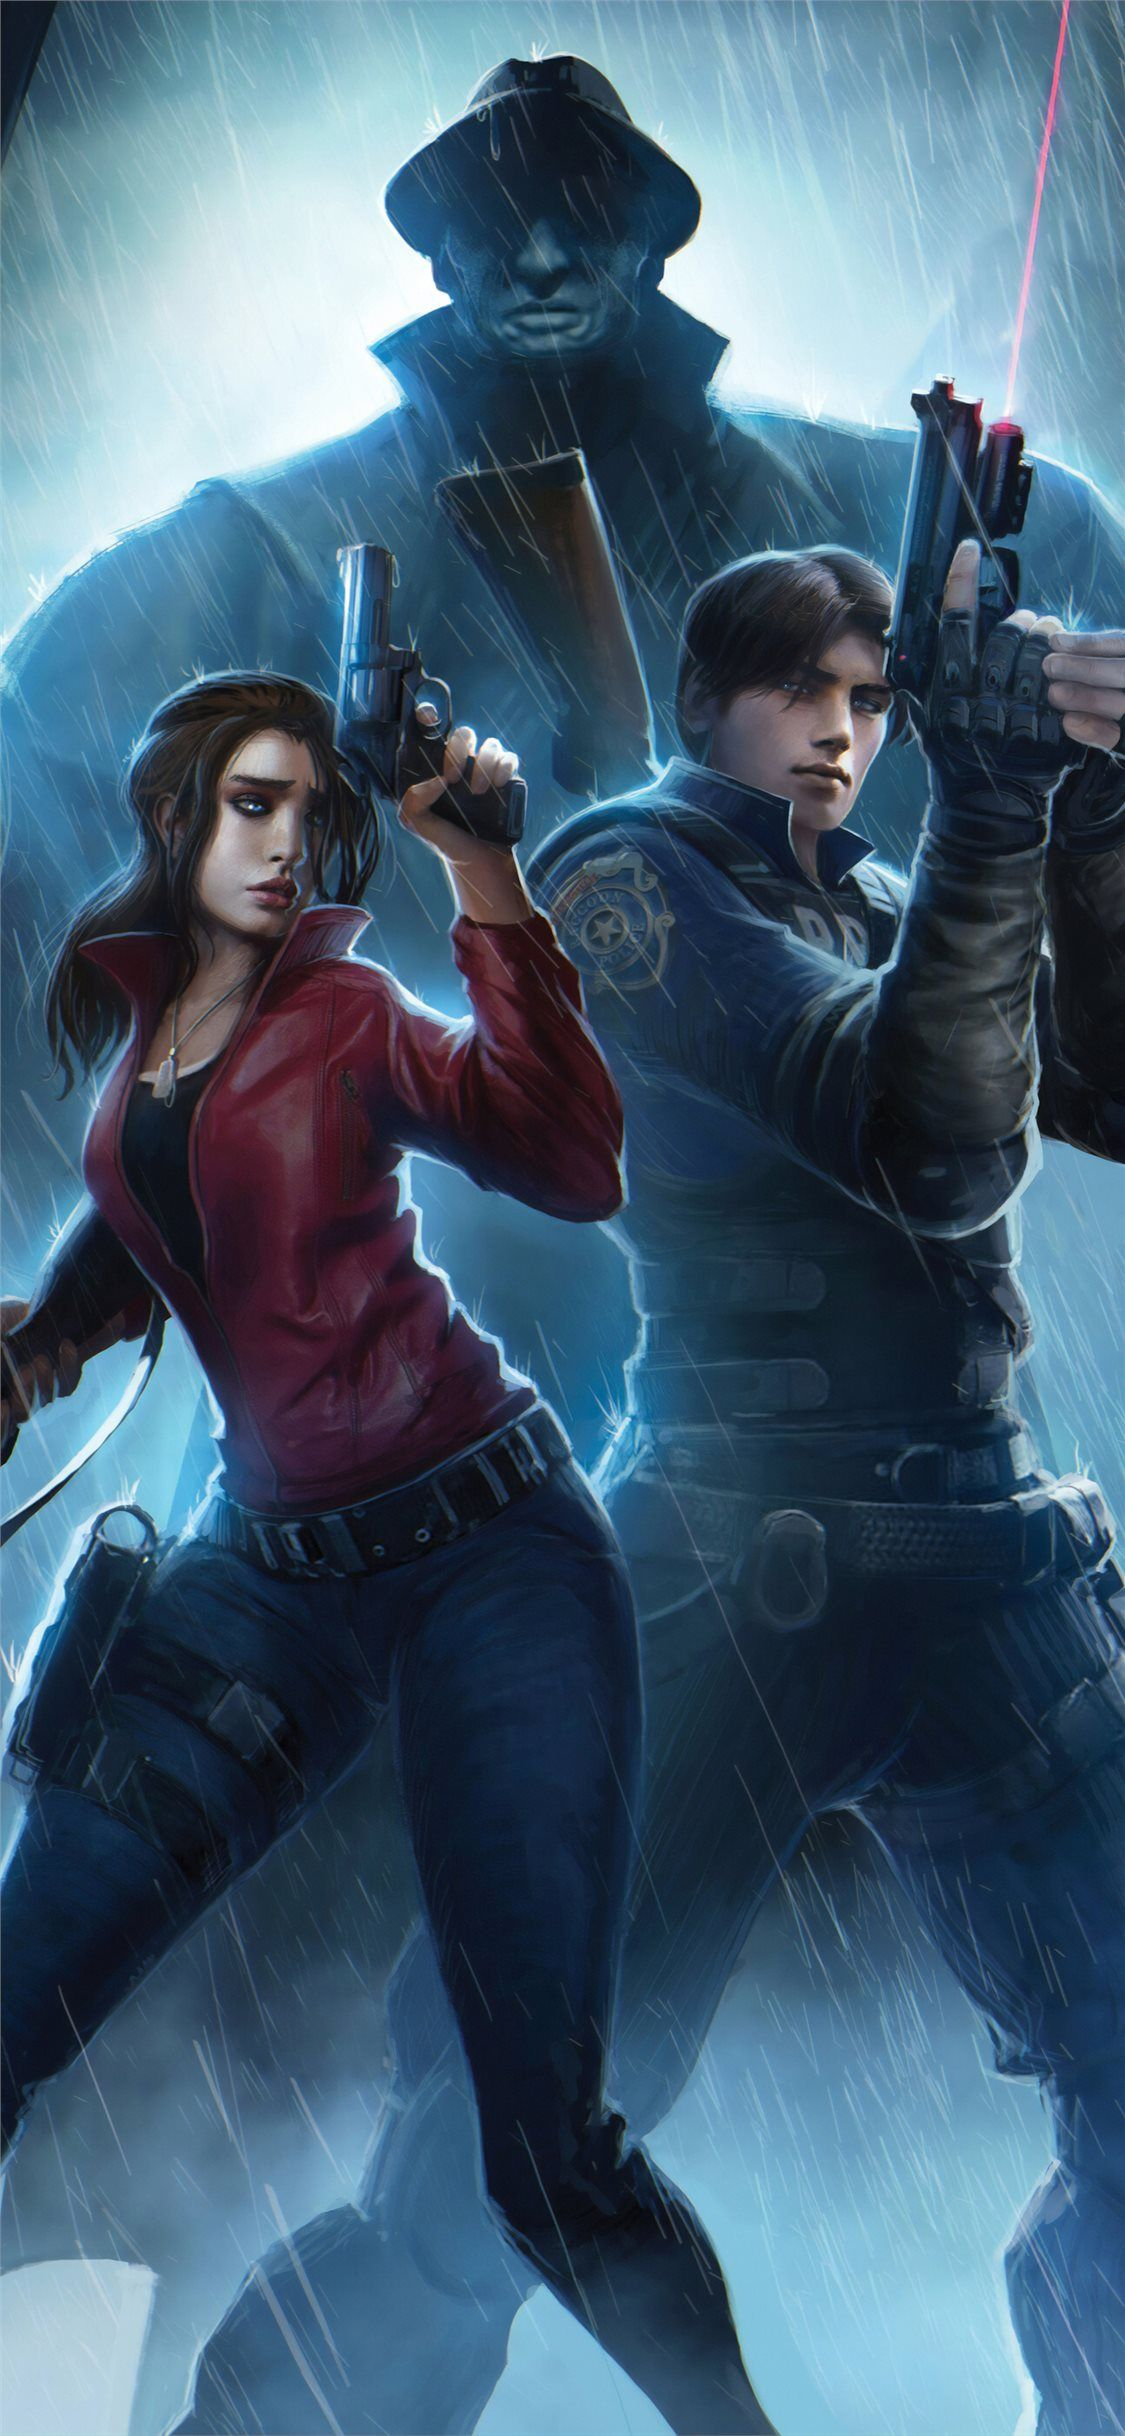 Resident Evil Claire Redfield Chris Redfield 4k Ar Resident Evil Girl Evil Art Resident Evil